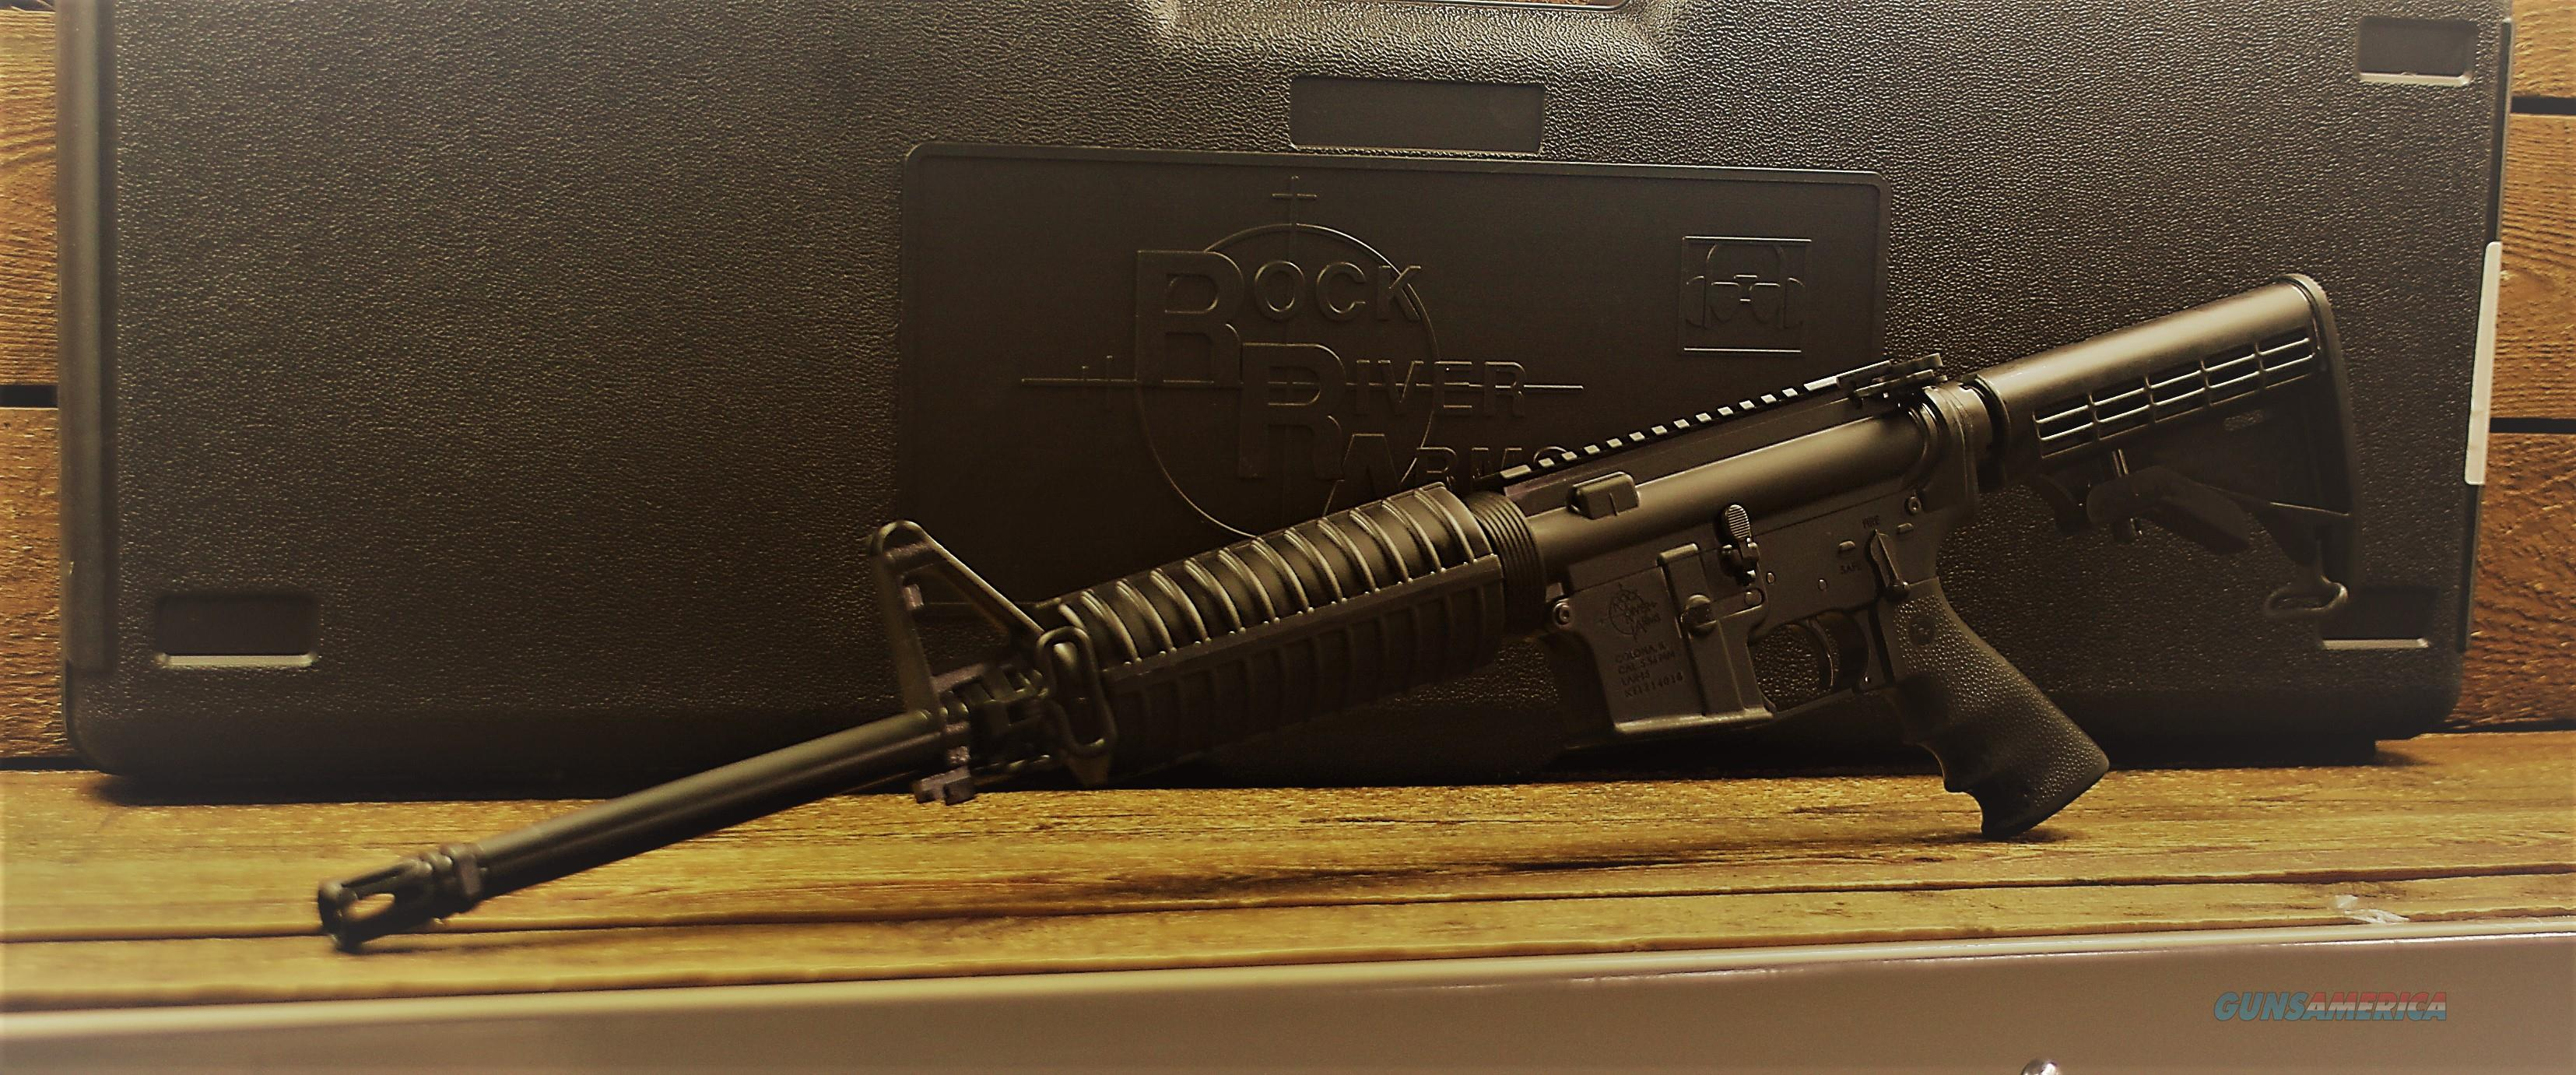 "EASY PAY $95 lAYAWAY  Rock River Arms LAR-15 Tactical Car A4 Tactical Carry Handle AR-15 Semi Auto Rifle .223 Rem/5.56mm NATO 16"" Chrome Lined Barrel Flip Front Sight Polymer Carbine Length Handguard Collapsible Stock Black AR1207  Guns > Rifles > Rock River Arms Rifles"